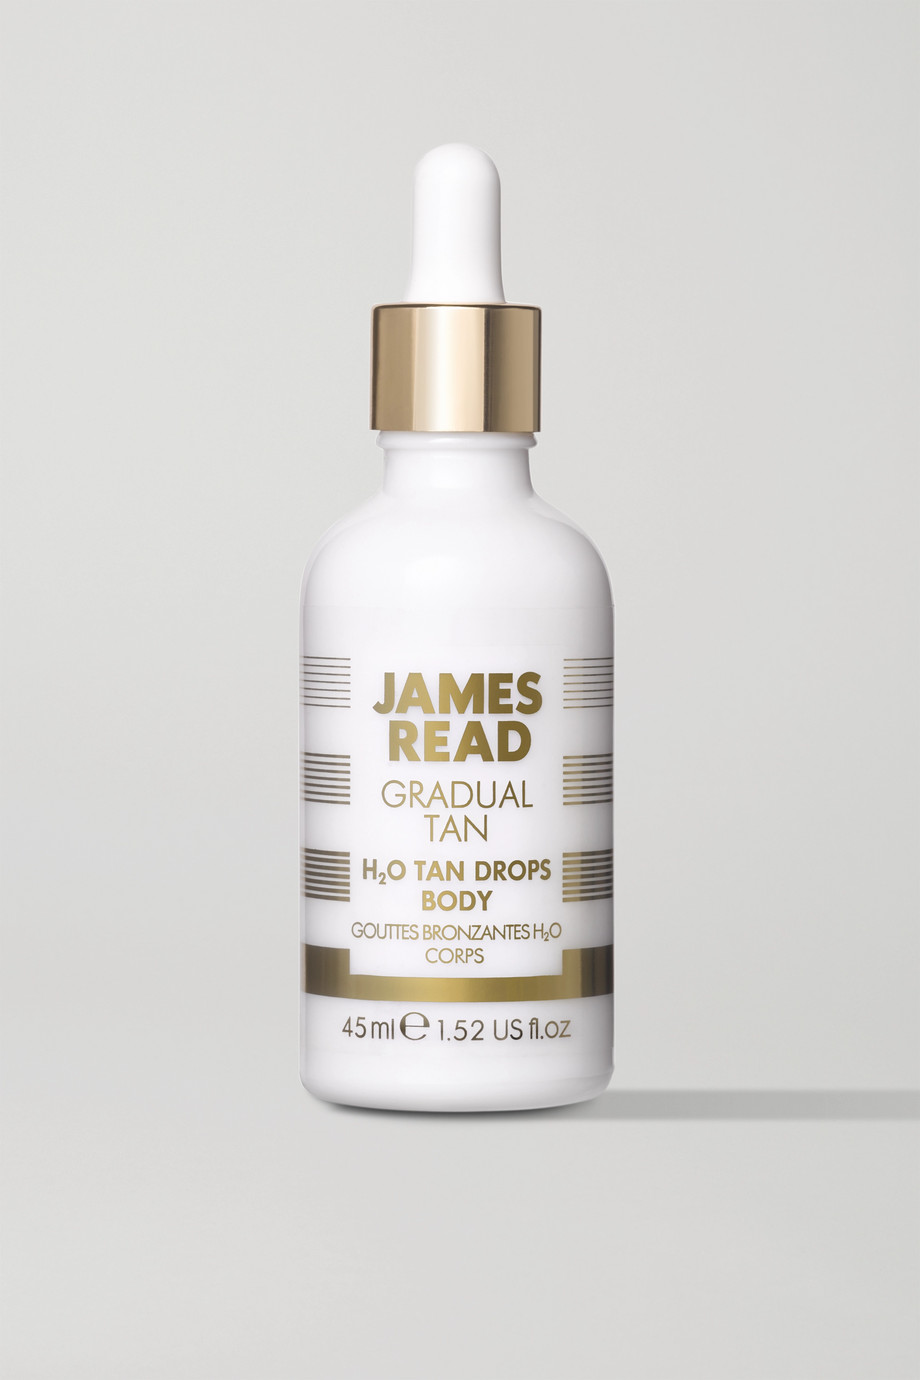 James Read H2O Tan Drops Body, 45ml